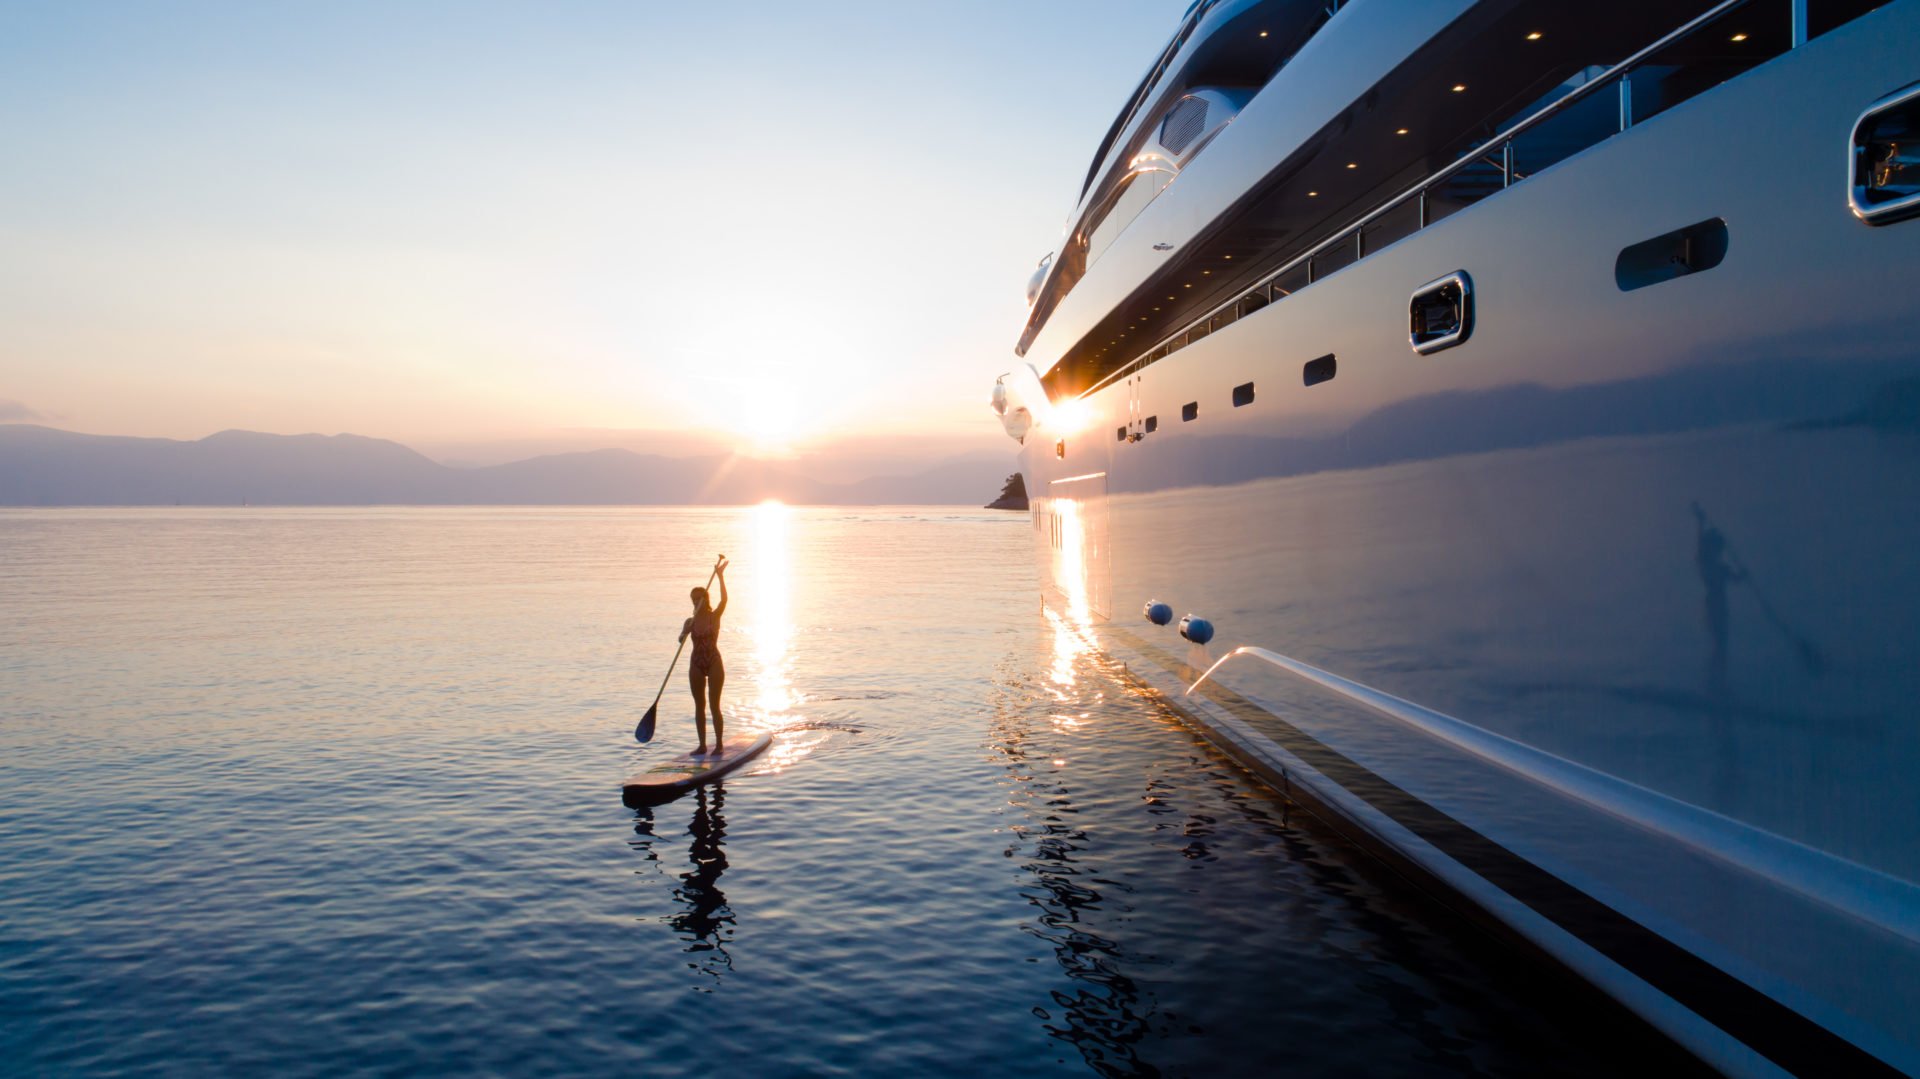 Yacht and woman on paddle board